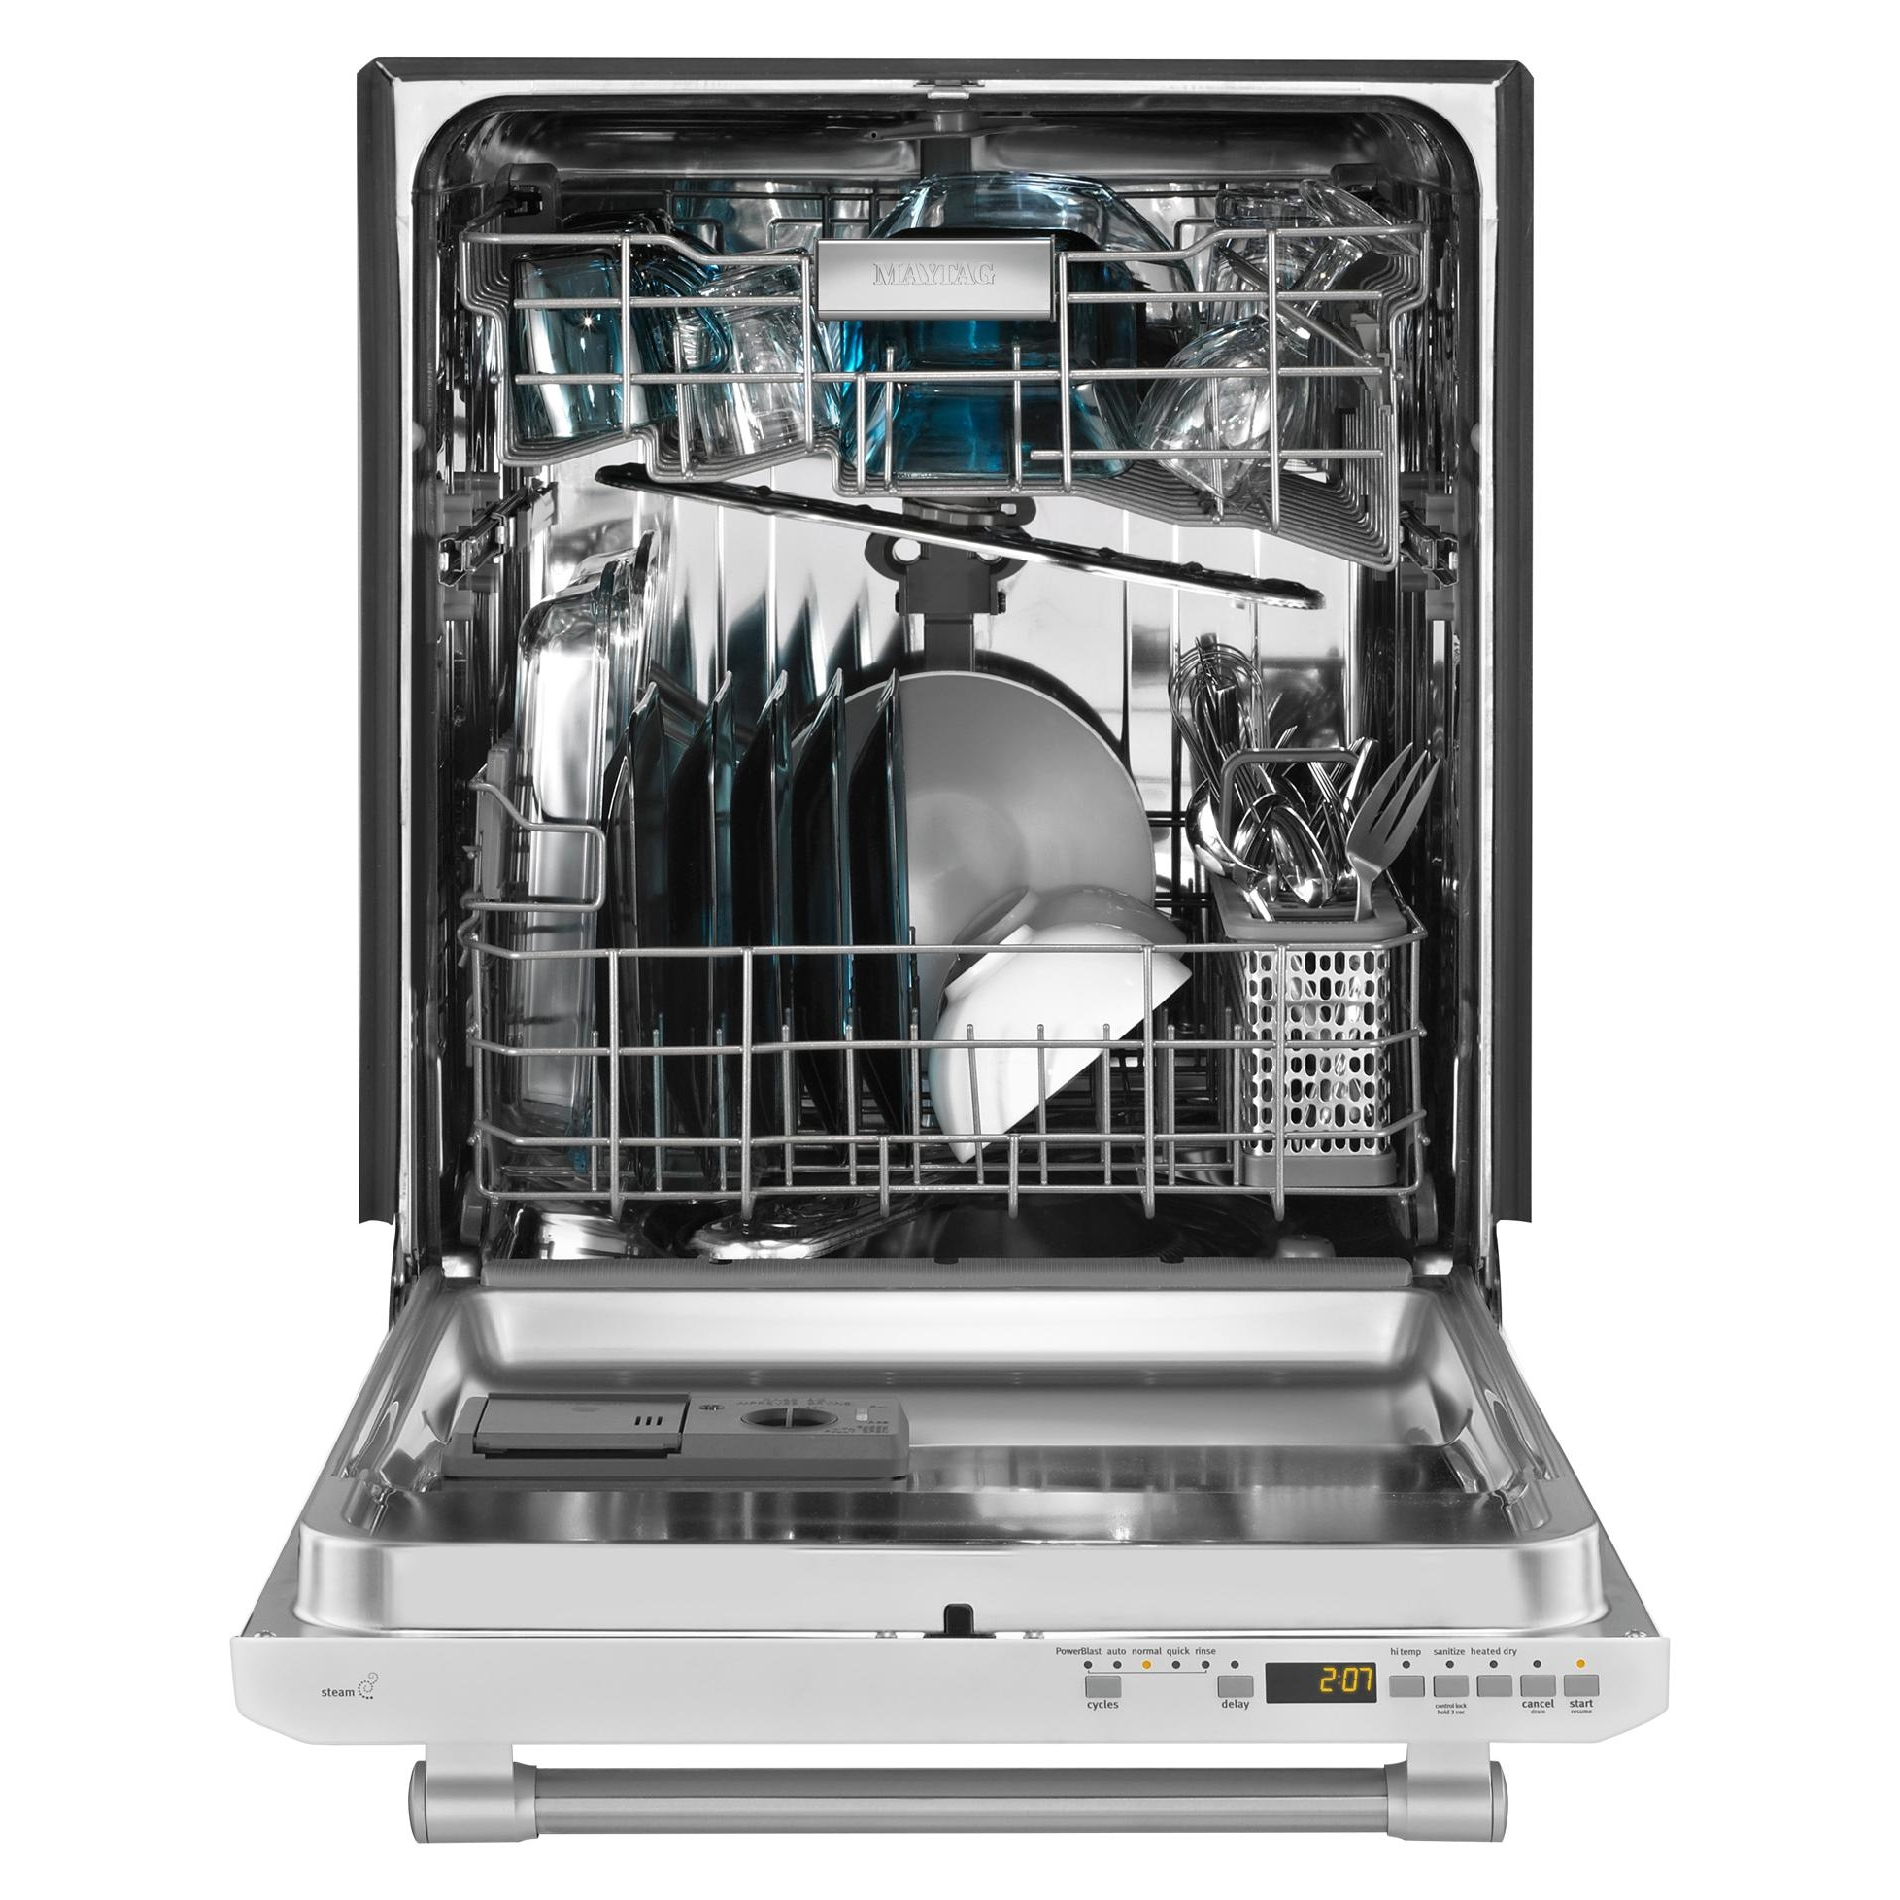 "Maytag 24"" Built-In Dishwasher w/ Stainless Steel Silverware Basket - White w/ Stainless Handle"